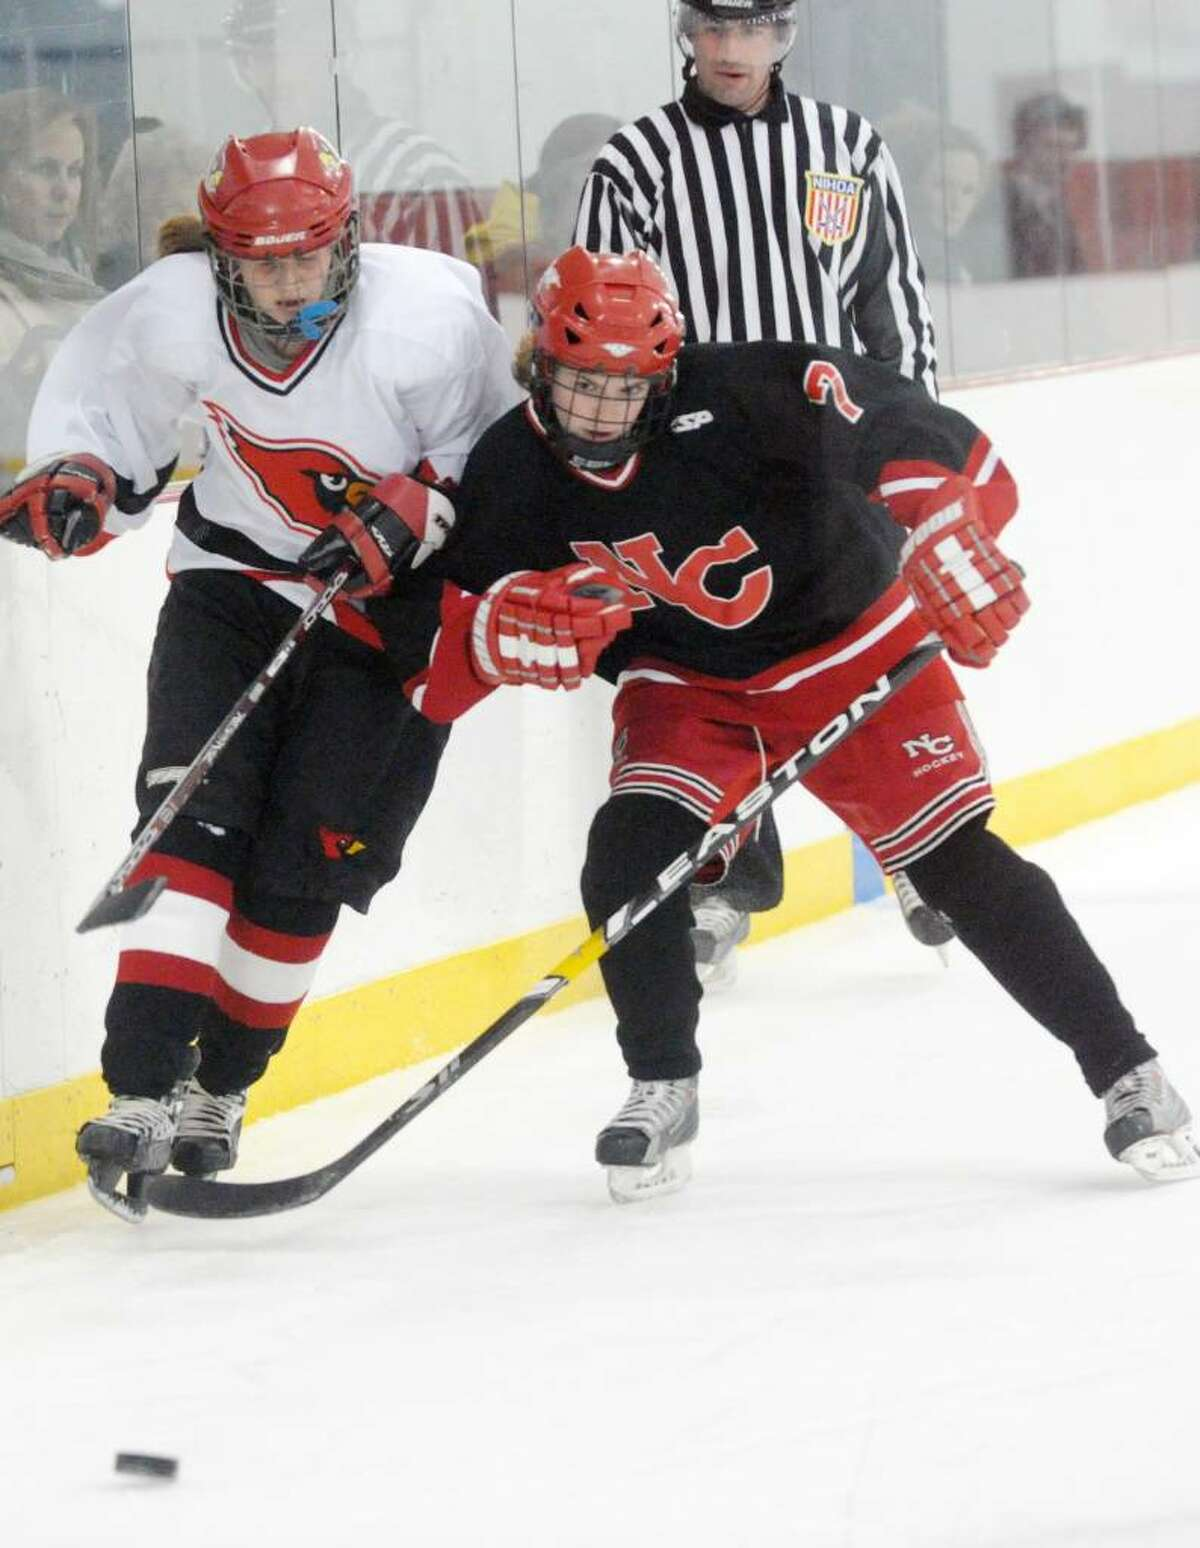 New Canaan's Abbey Buckenheimer shoulders Greenwich's Olivia Tapsall as Greenwich High hosts New Canaan in a girls hockey game at Dorothy Hamill Saturday afternoon, January 16, 2010.